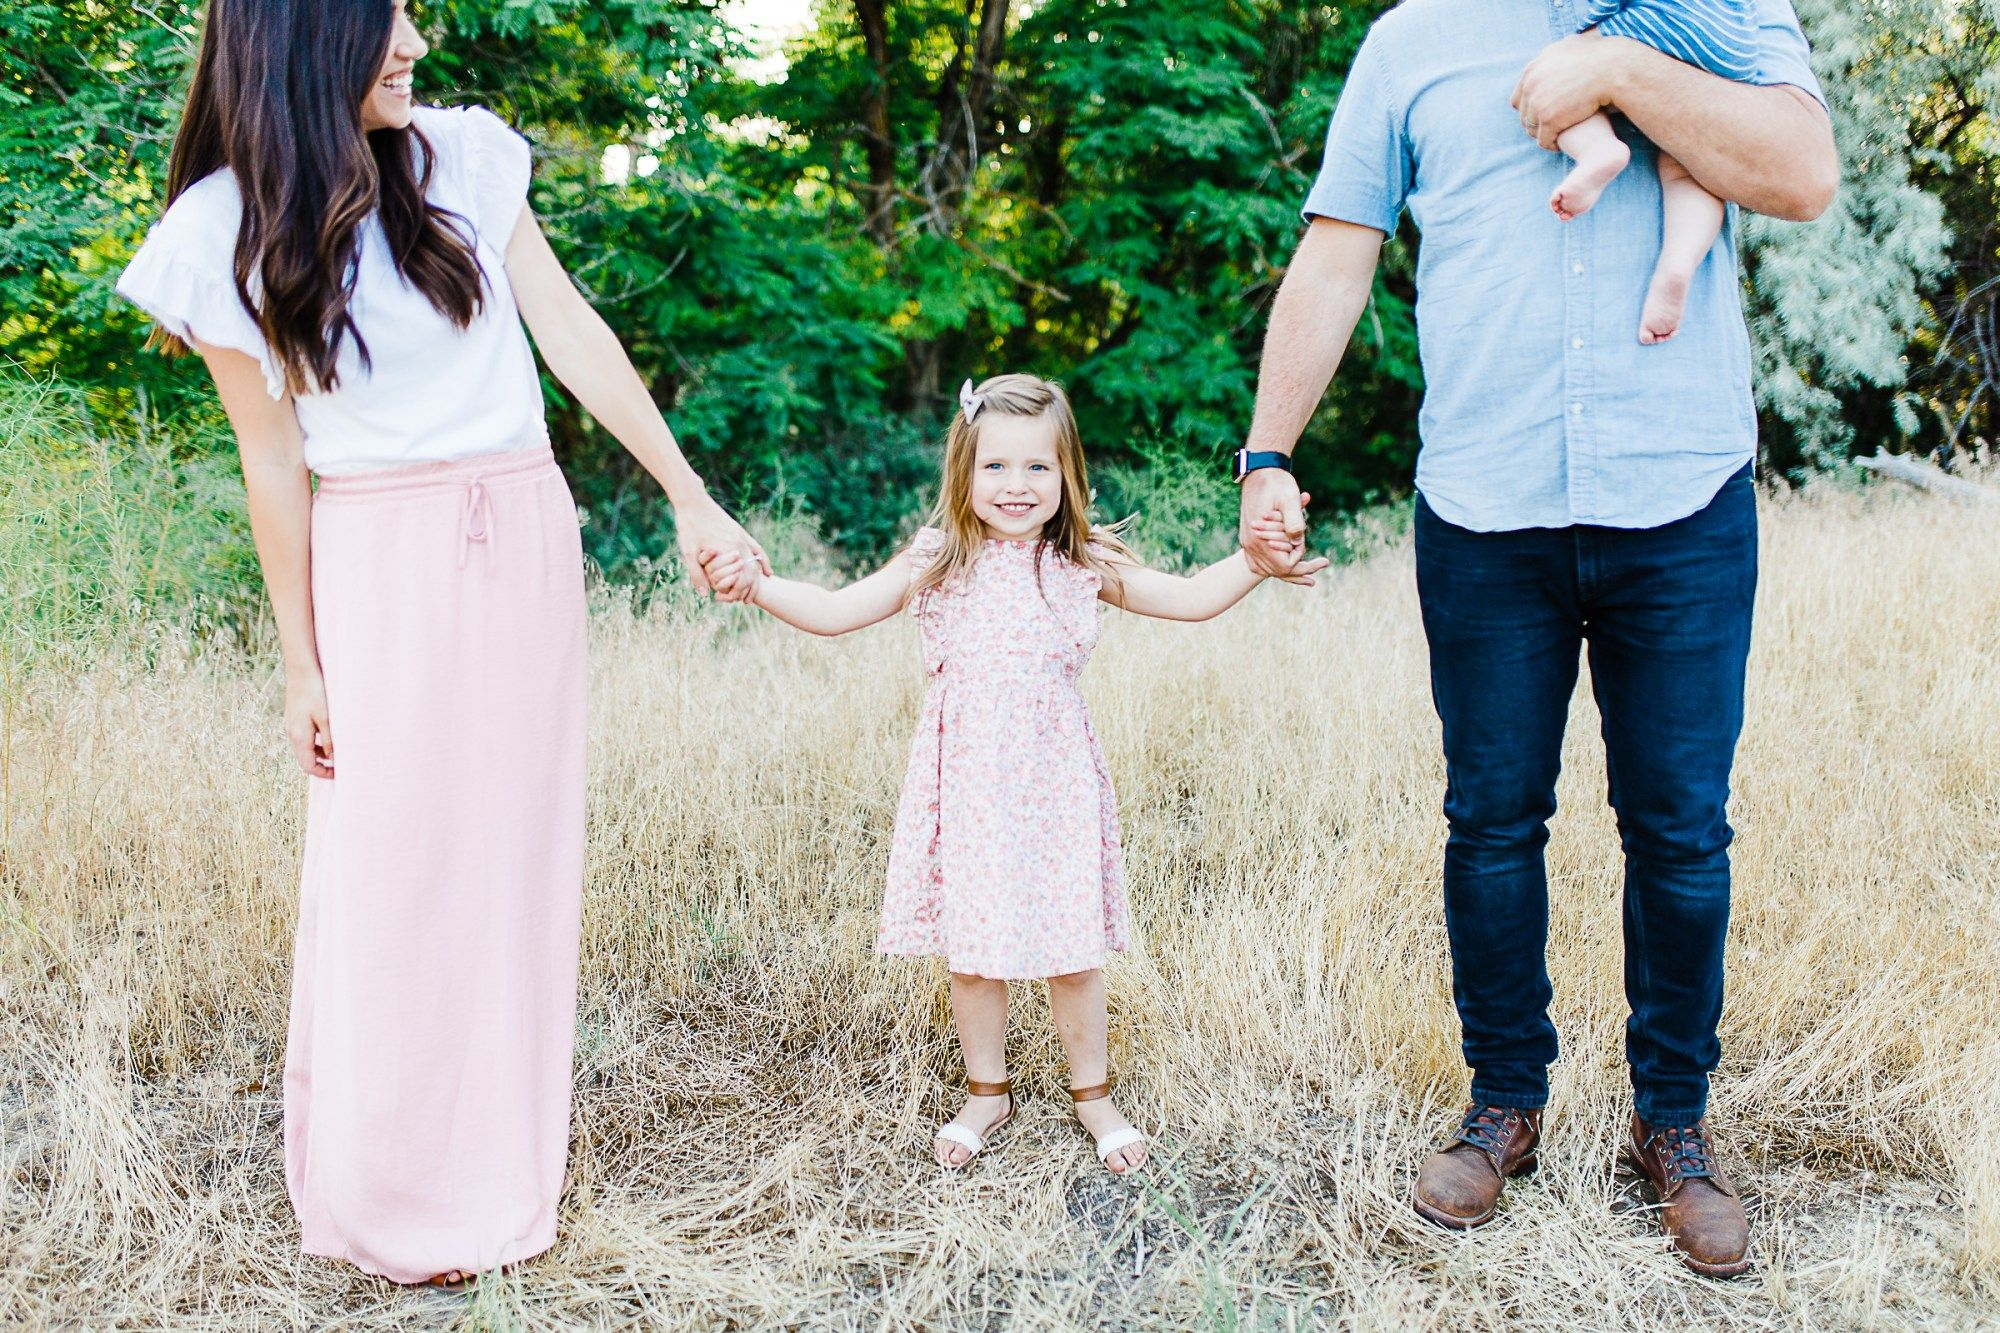 Morris salt lake family photography utah photographer what to wear for family pictures